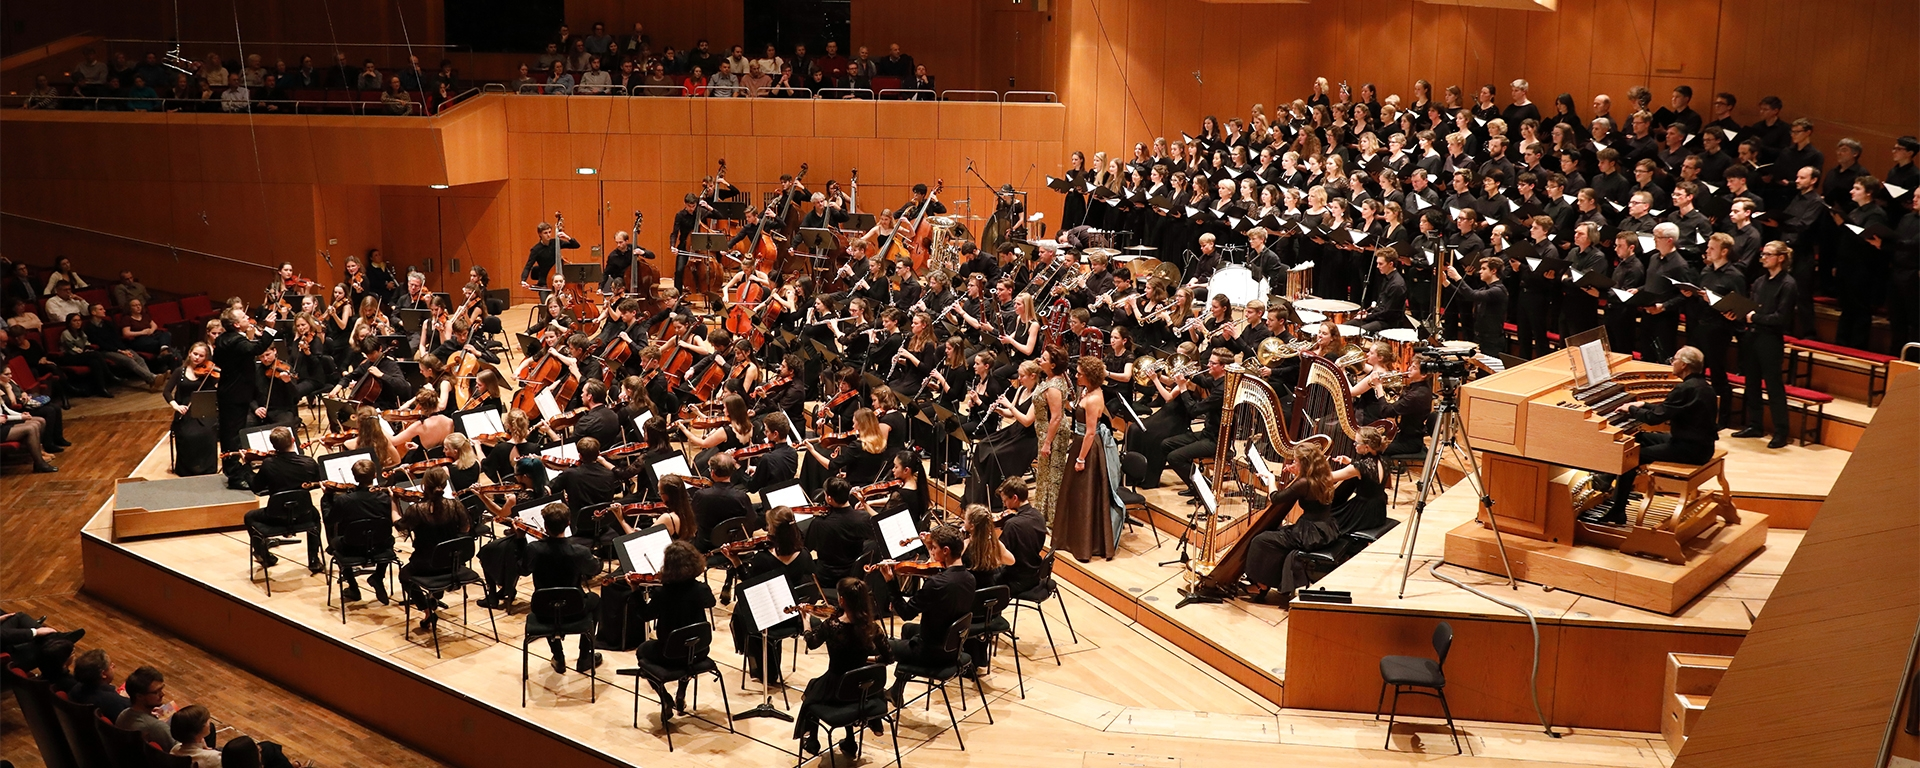 Symphony Concert of the Bavarian State Youth Orchestra (BLJO)